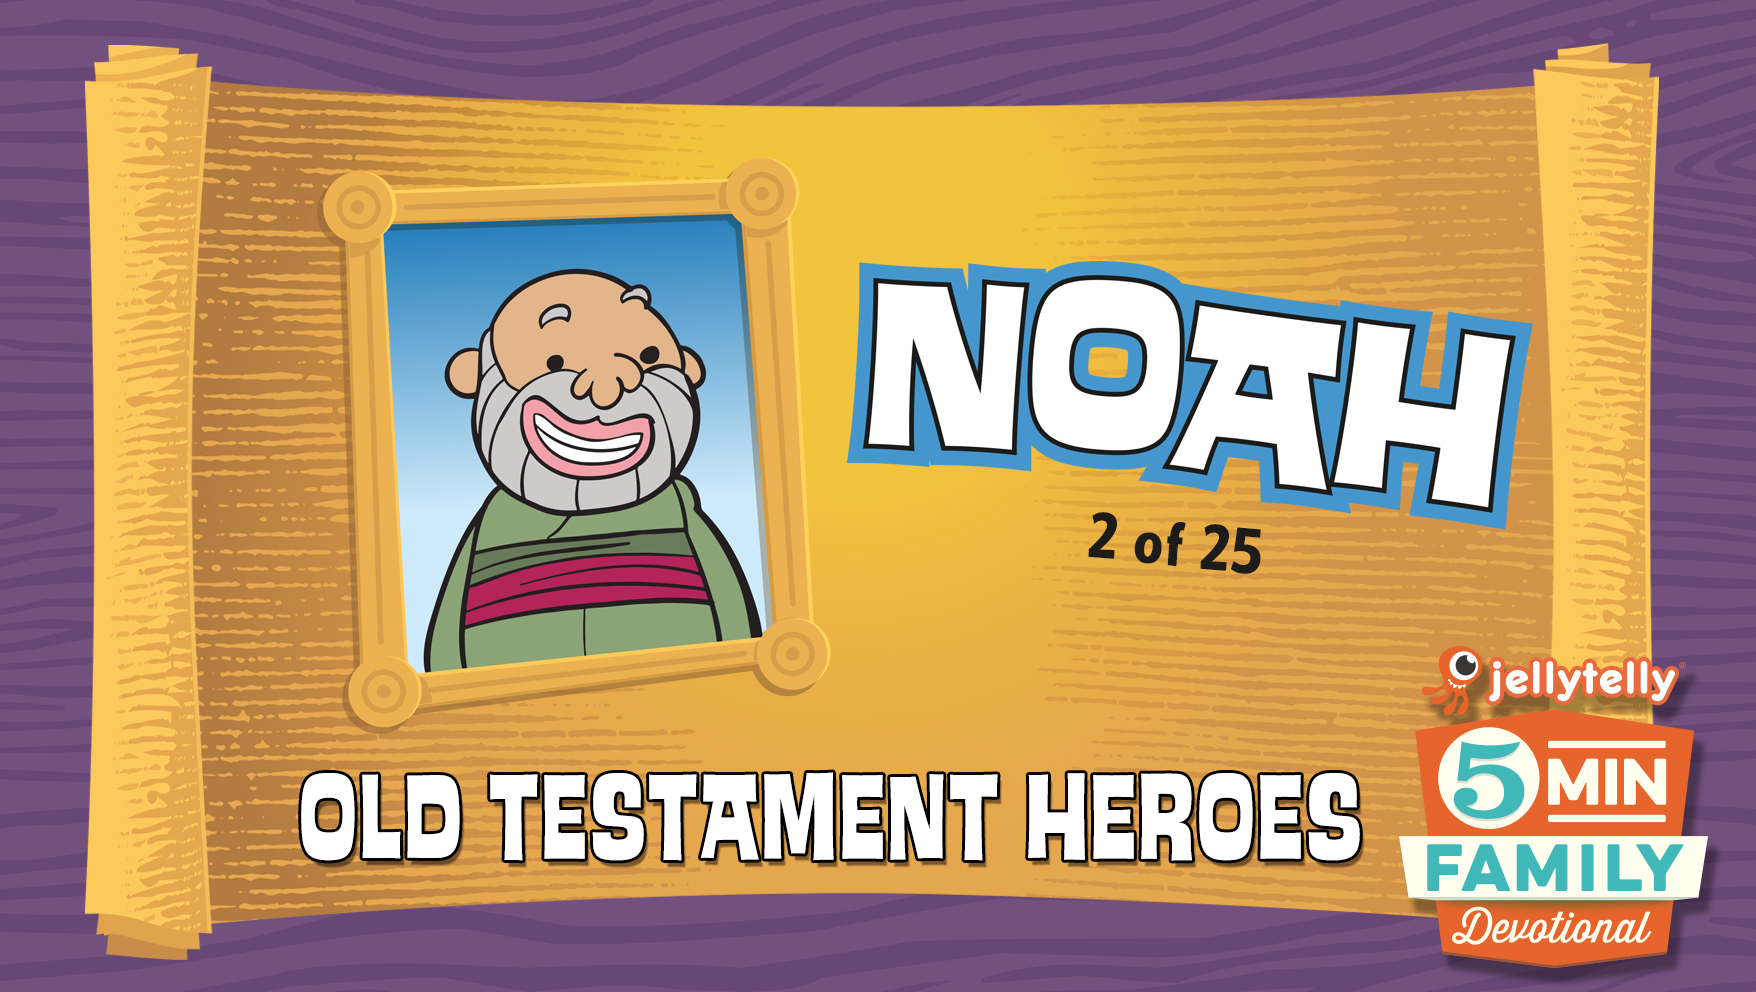 Noah: Old Testament Heroes - 5 Minute Family Devotional